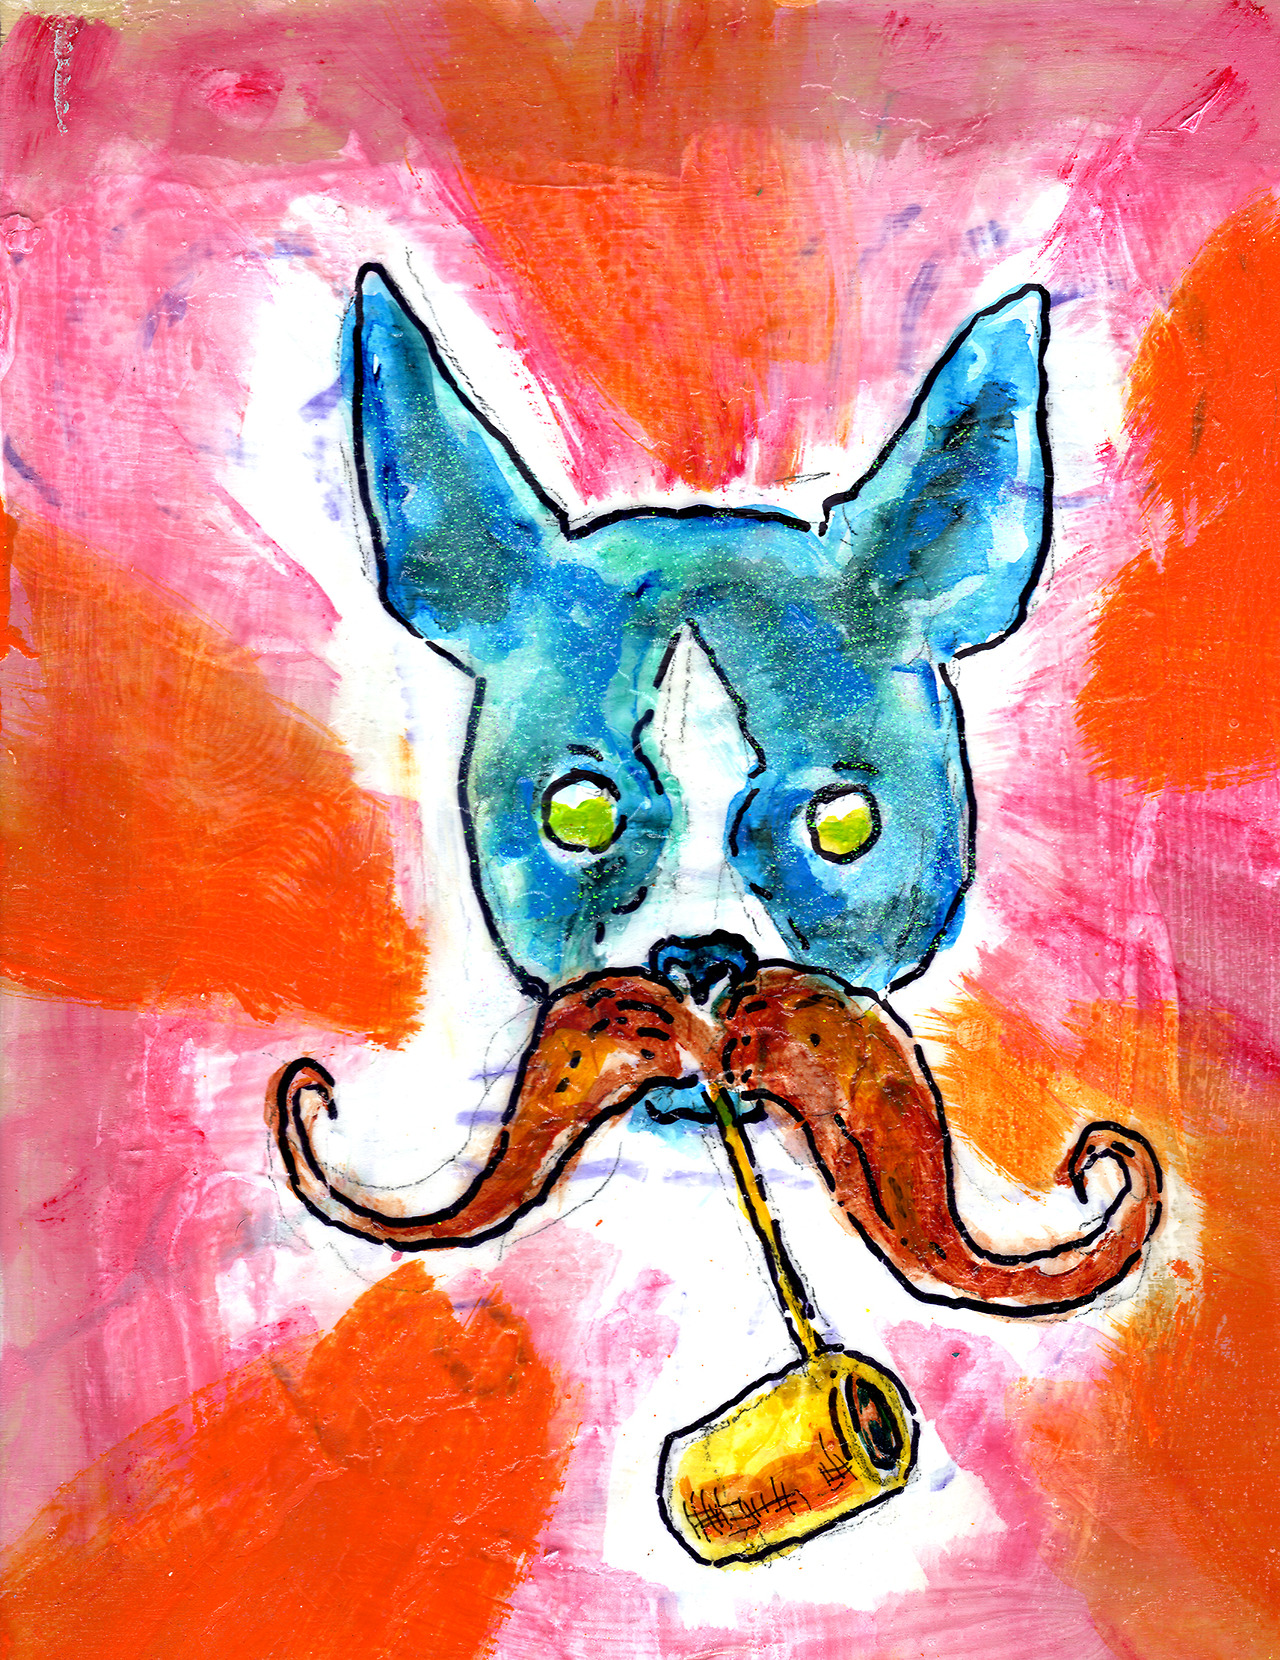 11/19/13 -  Macho Moston Merrier.    Movember. Nacho Boston Terrier.   Kickstarter - http://www.kickstarter.com/projects/taylorwinder/the-art-book-of-the-year